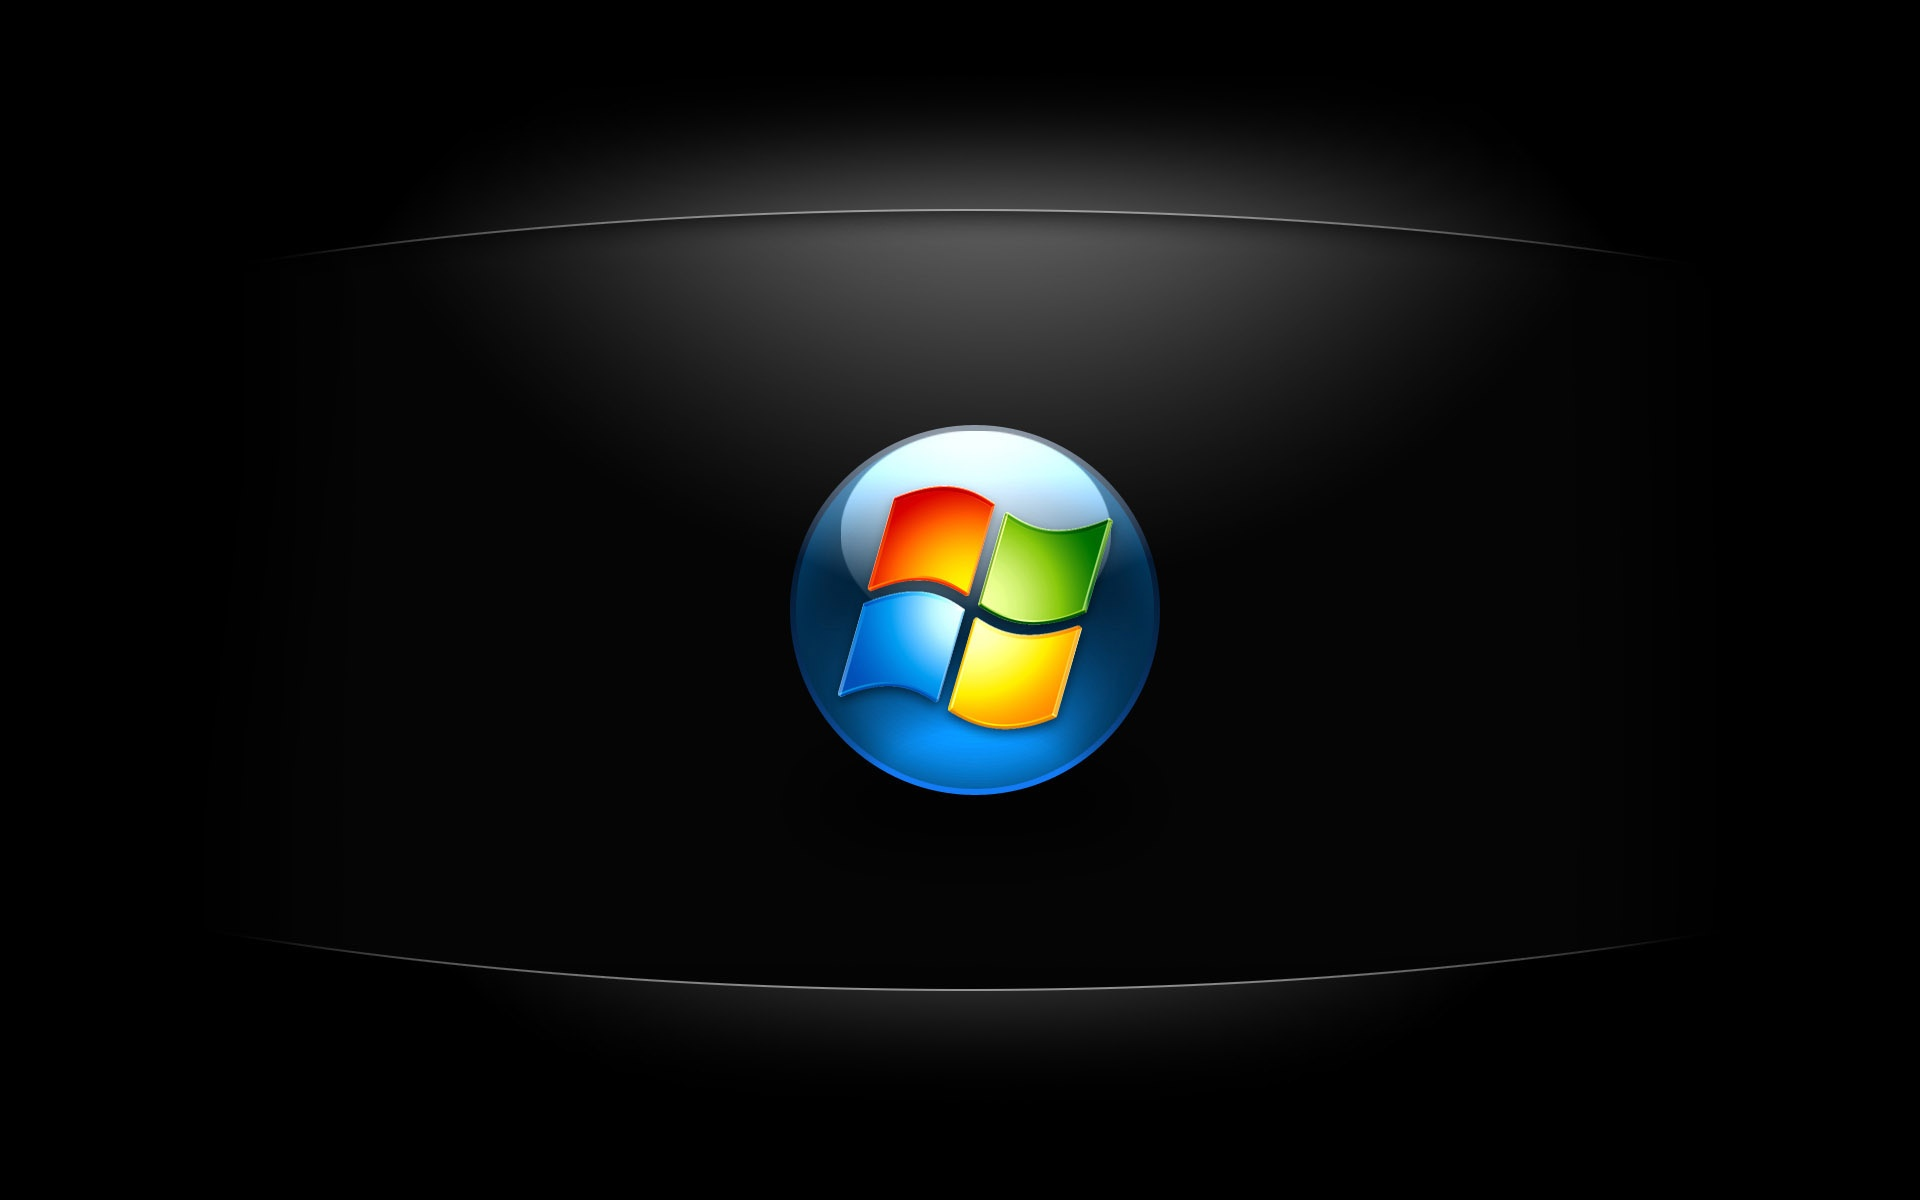 dark windows 7 hd wallpaper - hd wallpapers